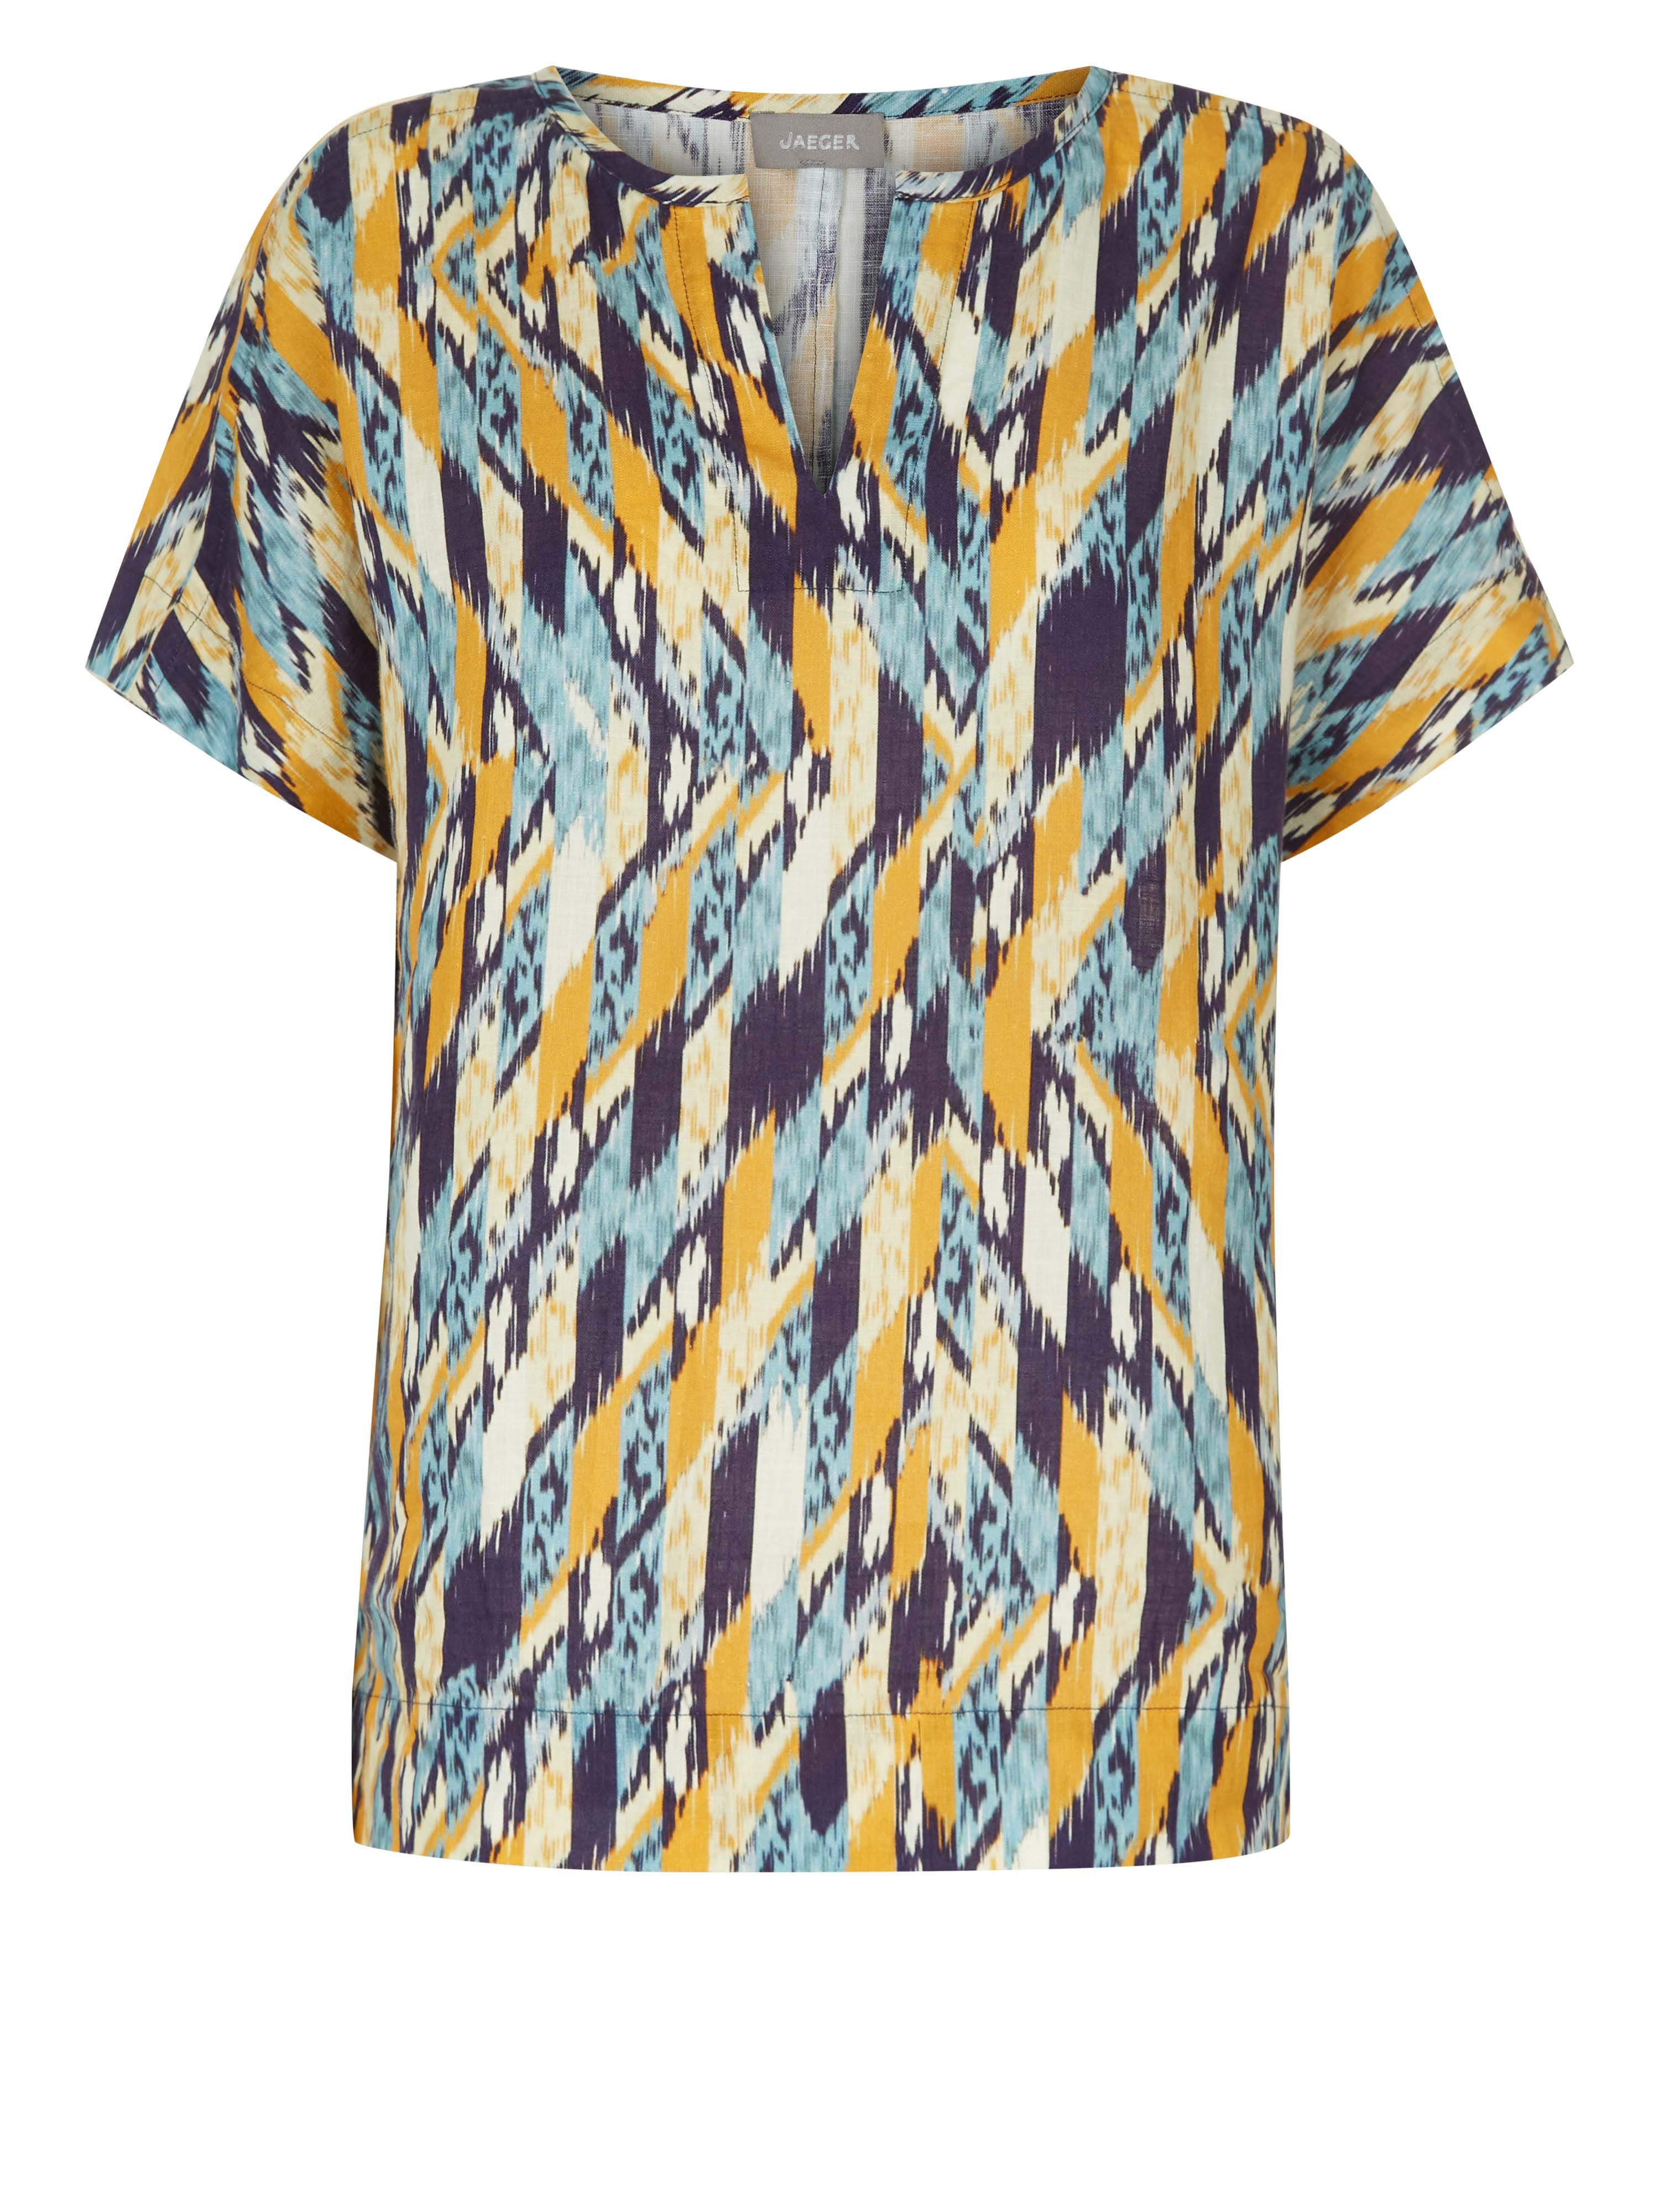 Jaeger Abstract Check Printed Linen T-Shirt, Multi-Coloured